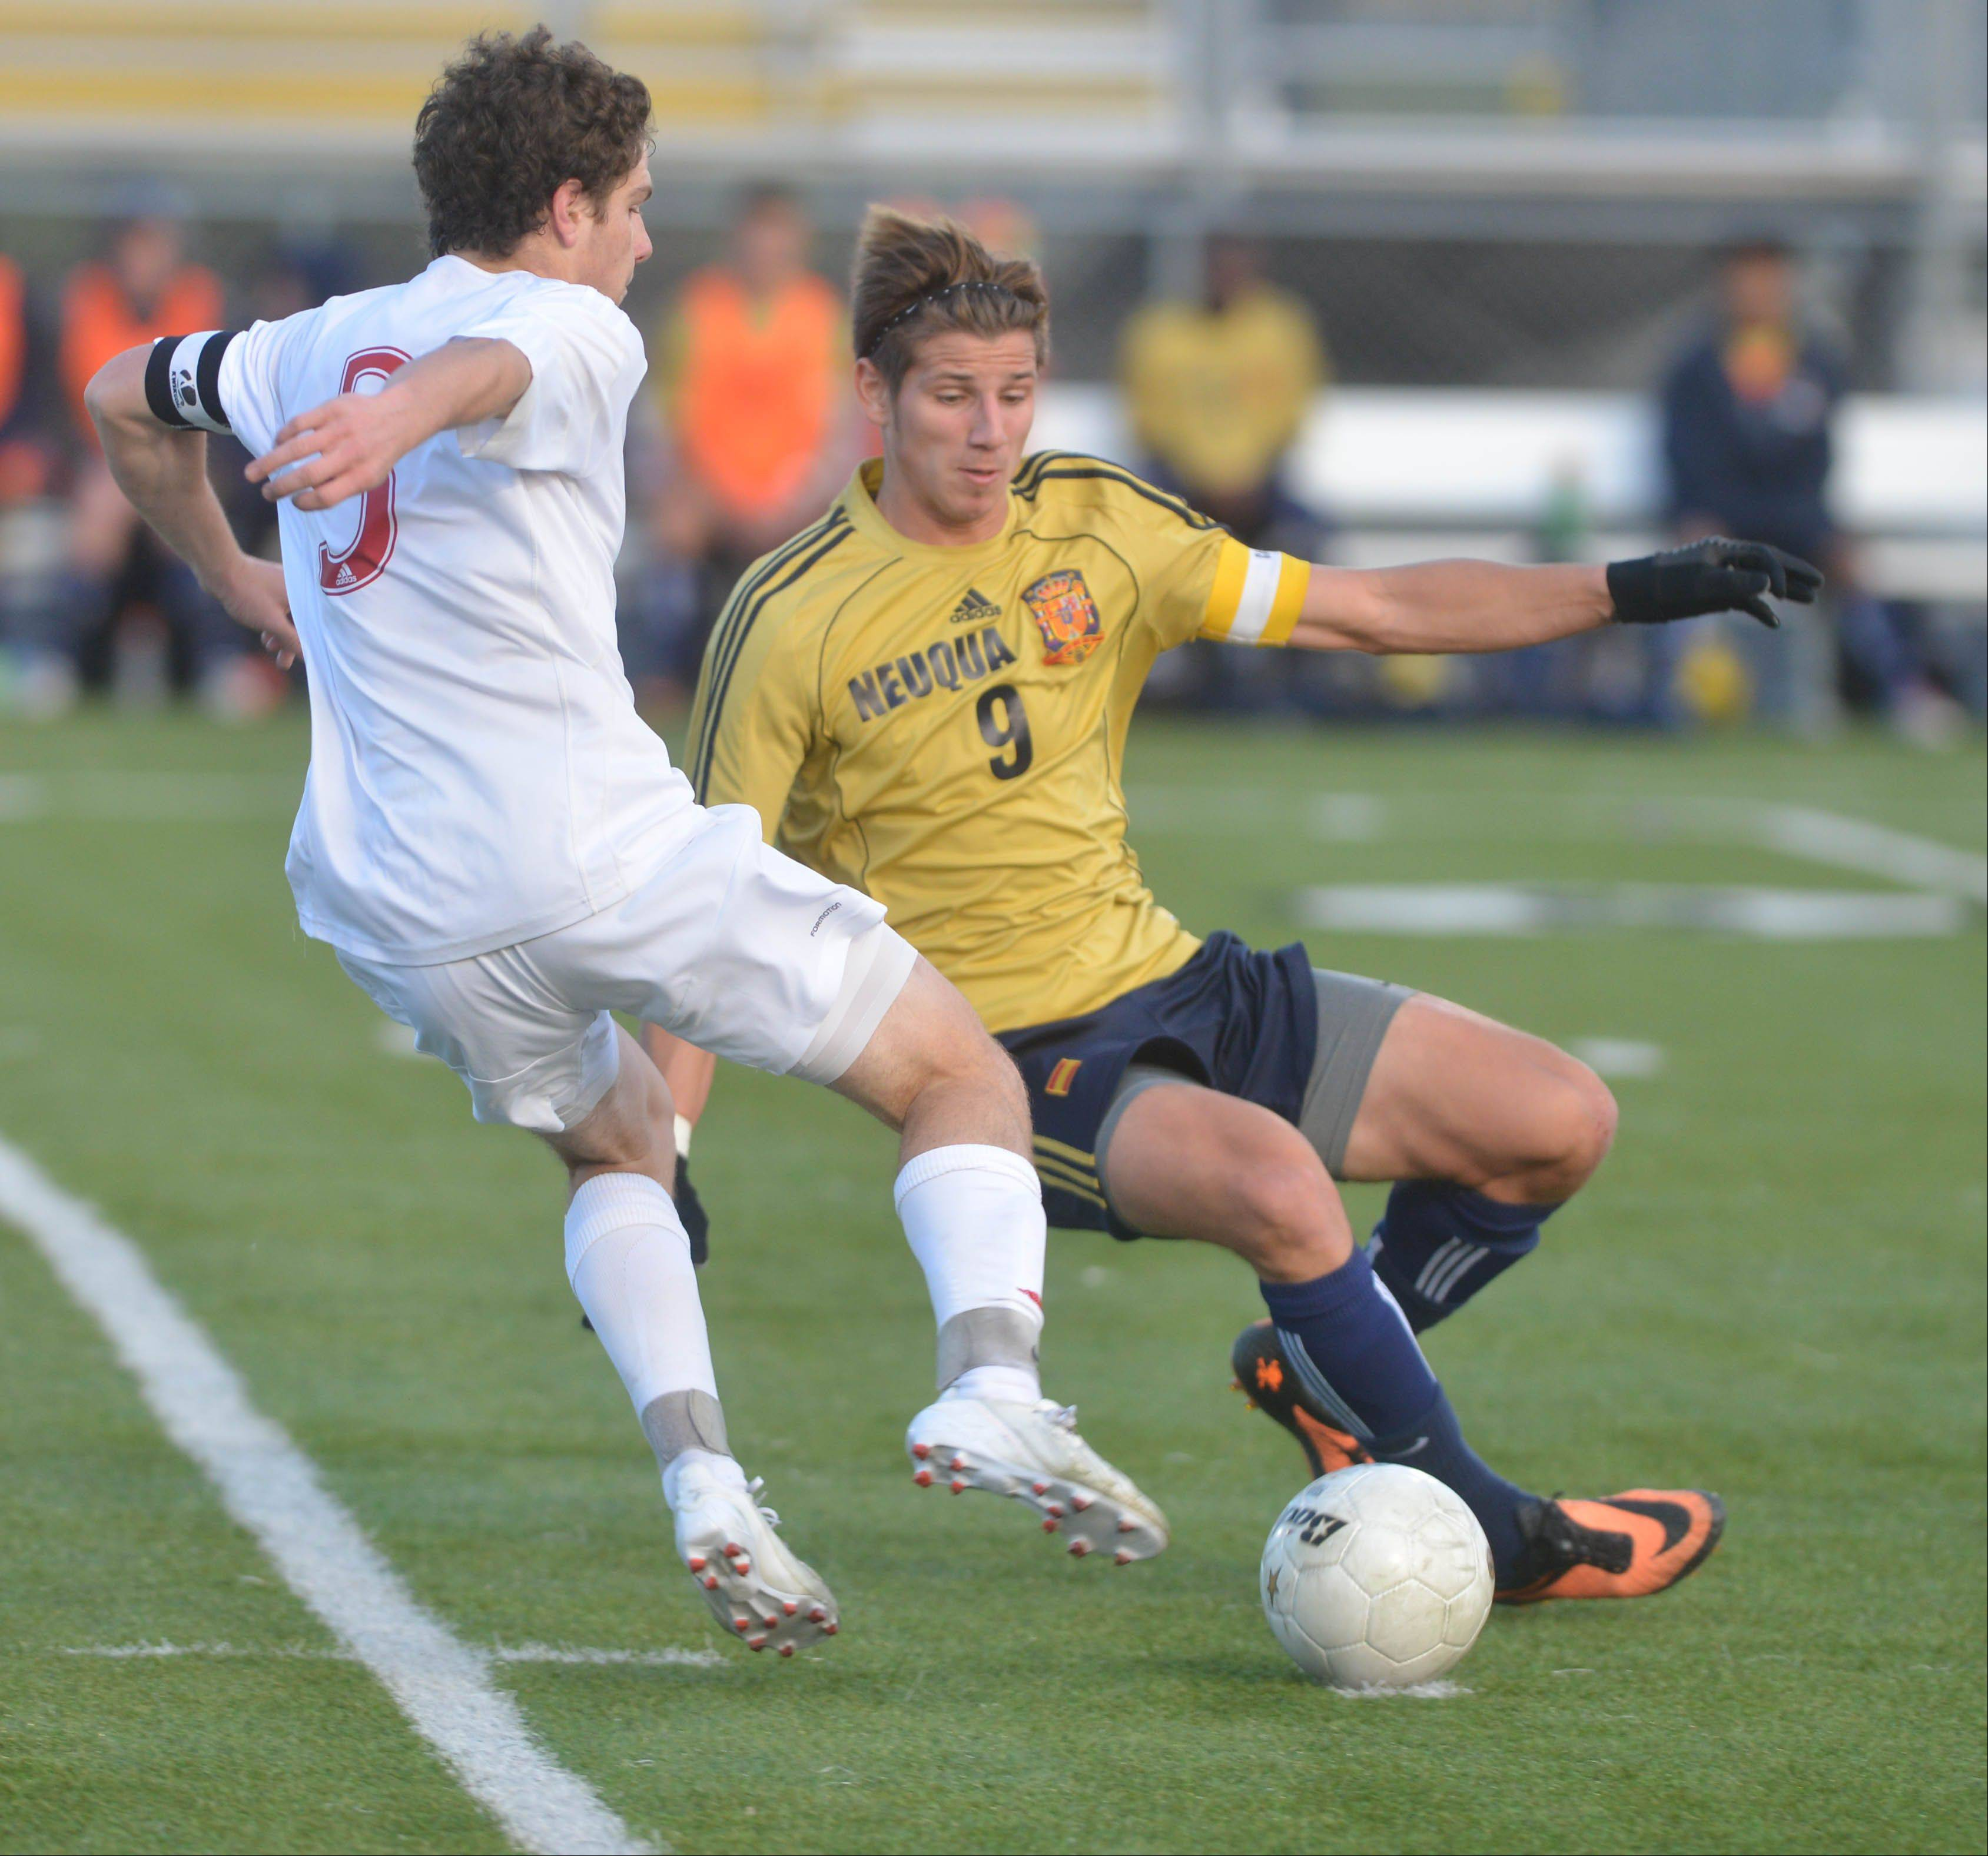 Jay Tegge of Naperville Central and Jake Loncar of Neuqua Valley go after a loose ball during the Naperville Central vs. Neuqua Valley boys soccer Class 3A Metea Valley sectional semifinals game Tuesday.